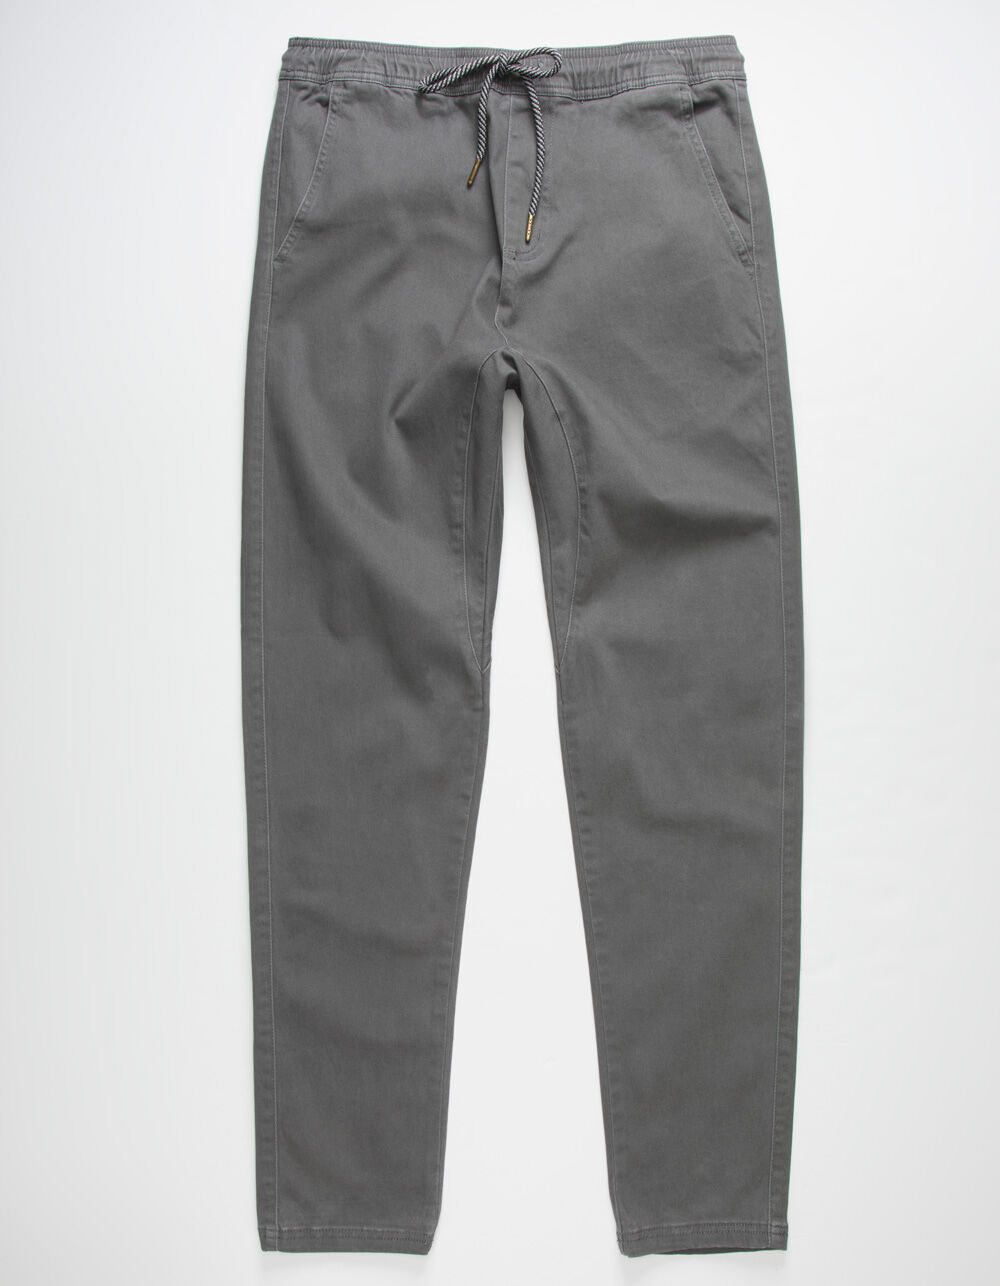 CHARLES AND A HALF Grave Chino Jogger Pants